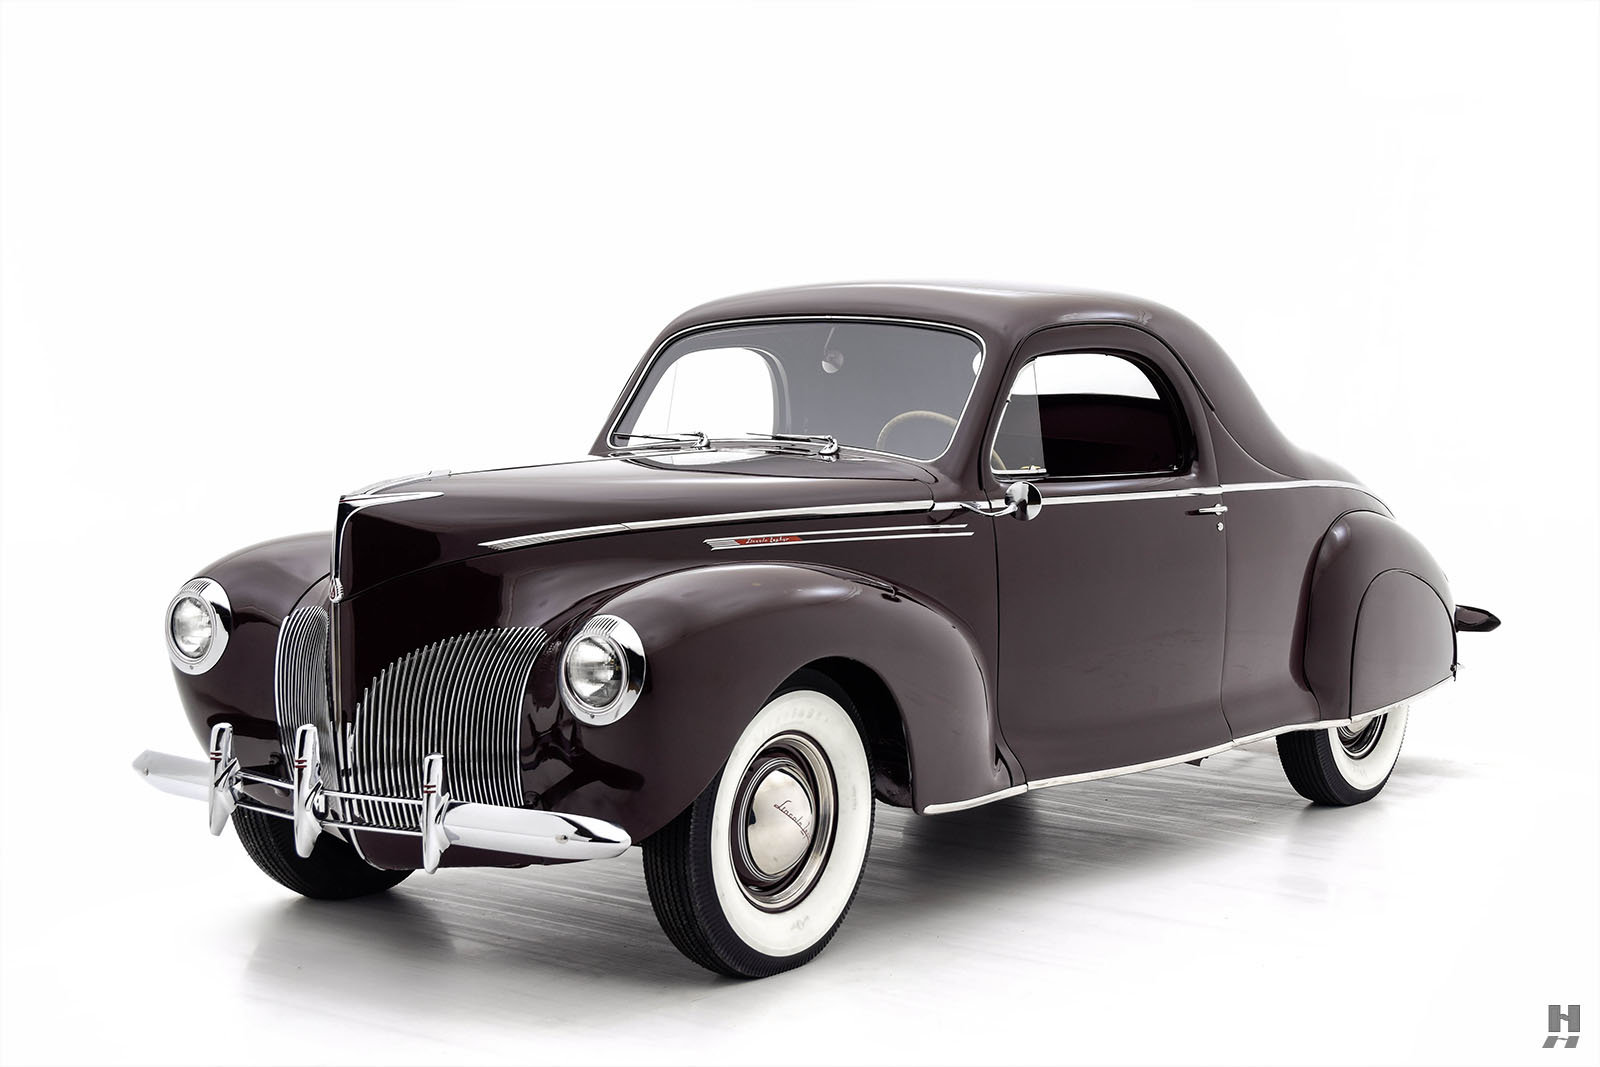 1940 LINCOLN ZEPHYR COUPE For Sale (picture 1 of 6)